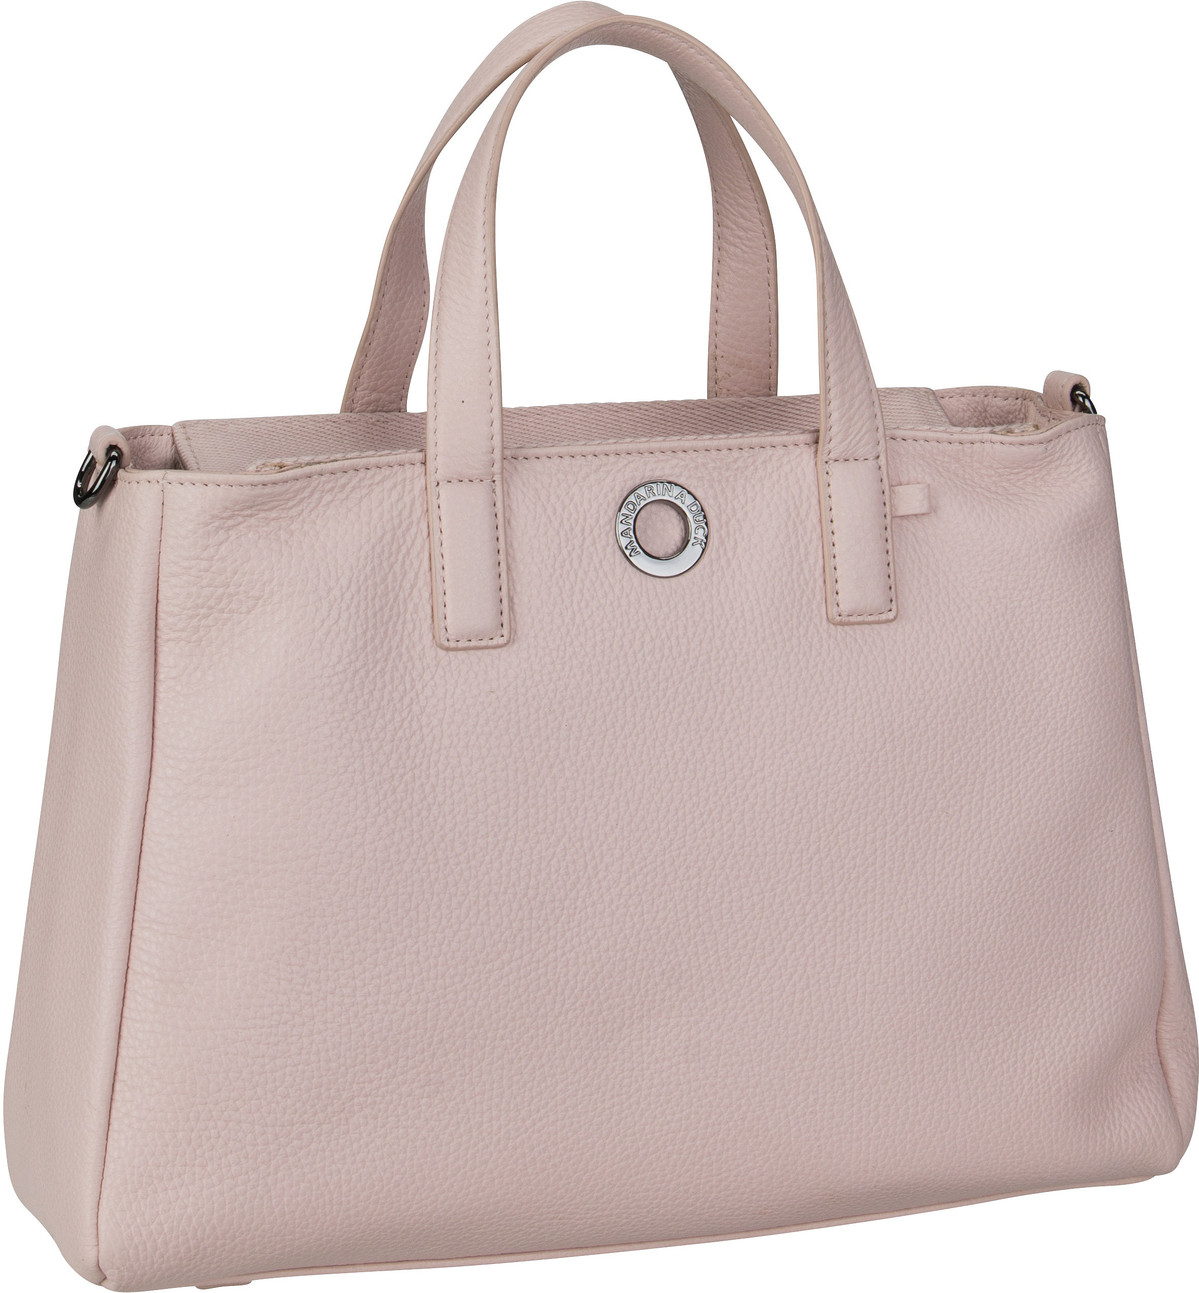 Handtasche Mellow Leather Tote Bag FZT26 Rose Metal